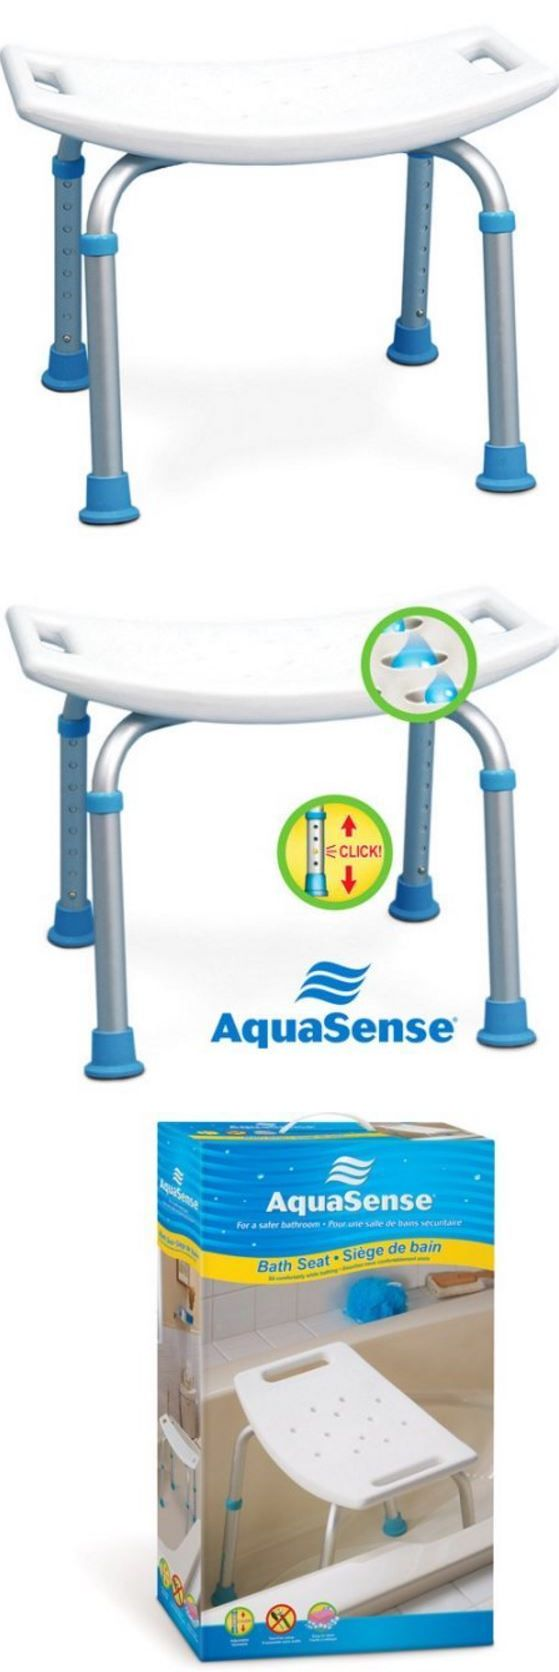 Shower and Bath Seats: Aquasense Adjustable Bath And Shower Chair, Non-Slip Seat Bathroom Safety Bench BUY IT NOW ONLY: $47.52